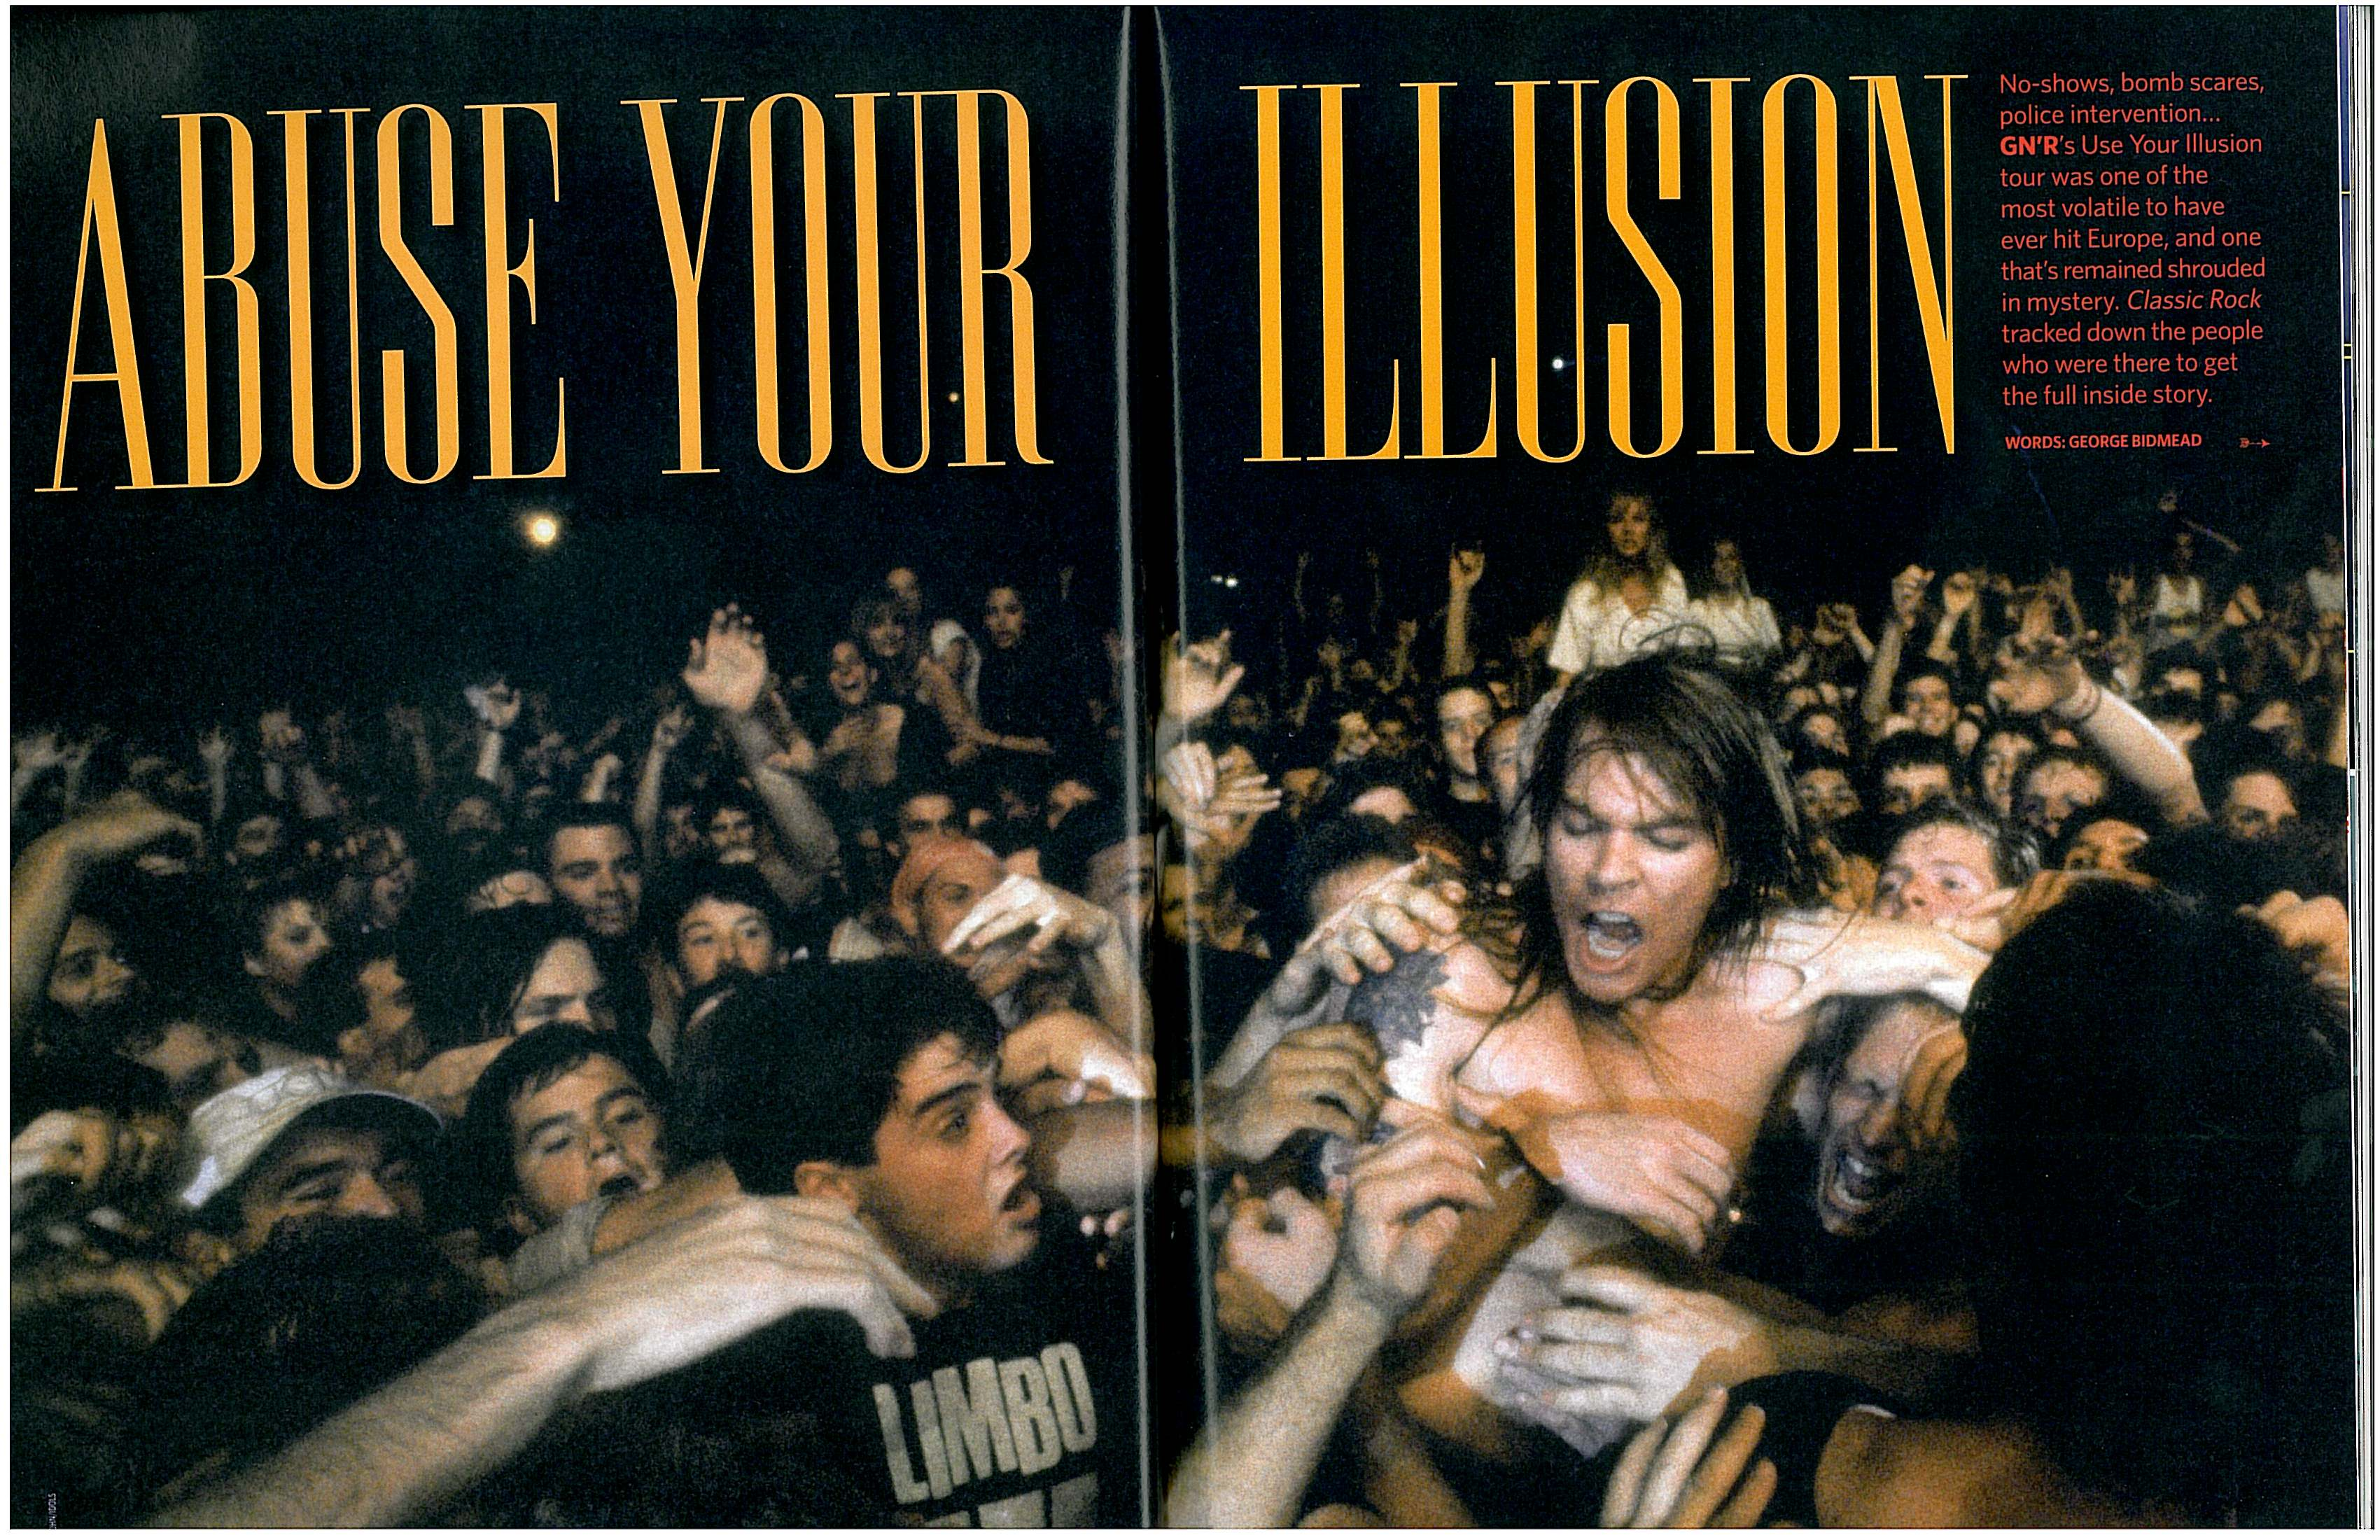 2006.05.DD - Classic Rock Magazine - Abuse Your Illusion ZeEy211U_o